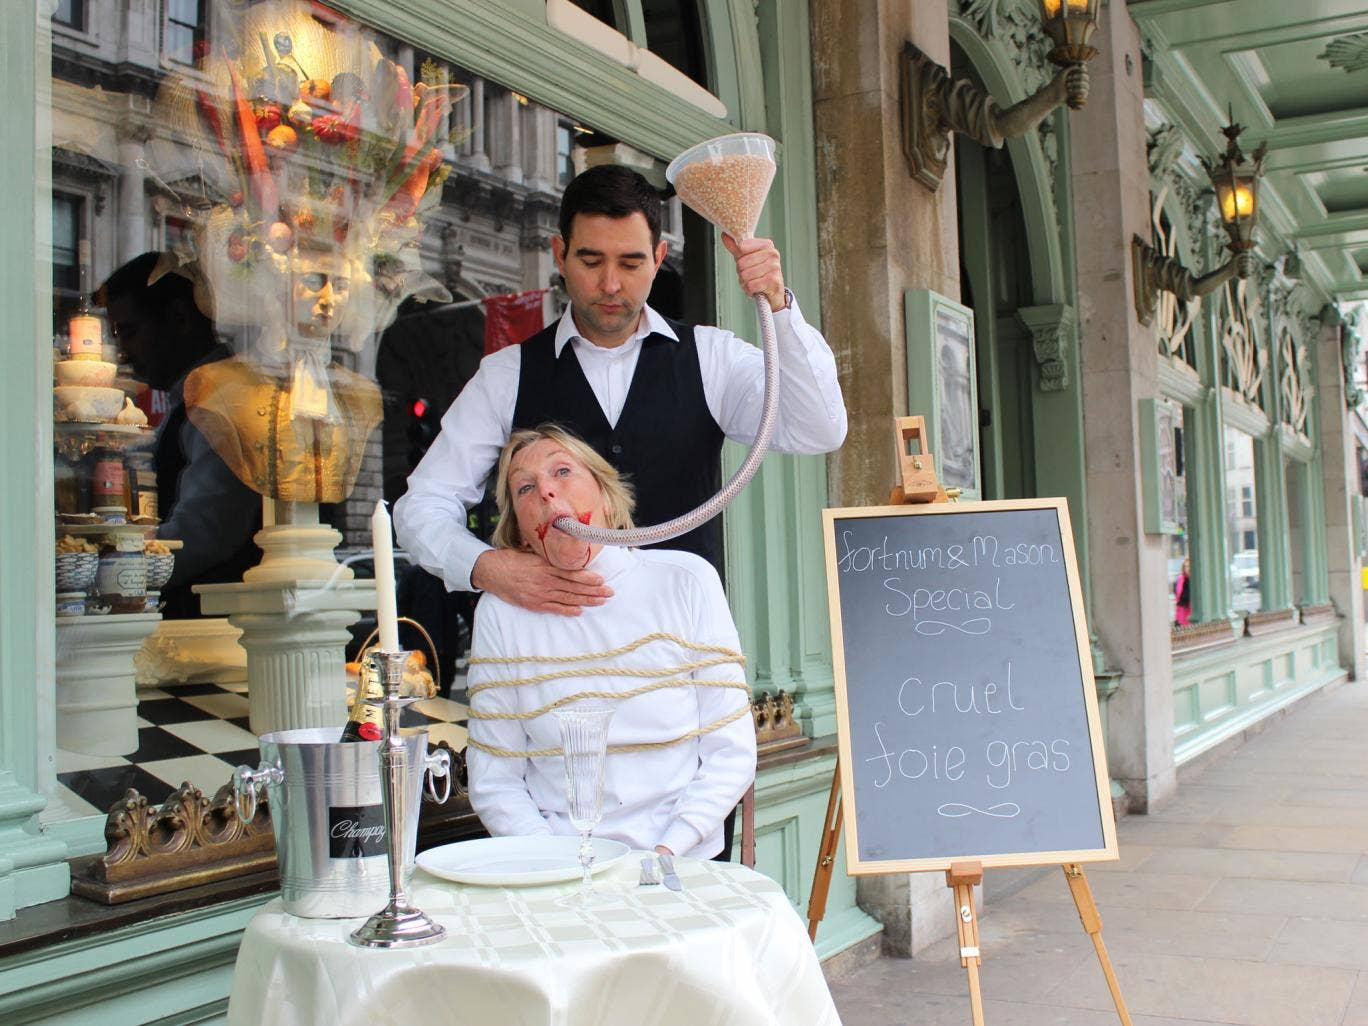 Ingrid Newkirk outside Fortnum & Mason with a bloodied mouth and feeding tube